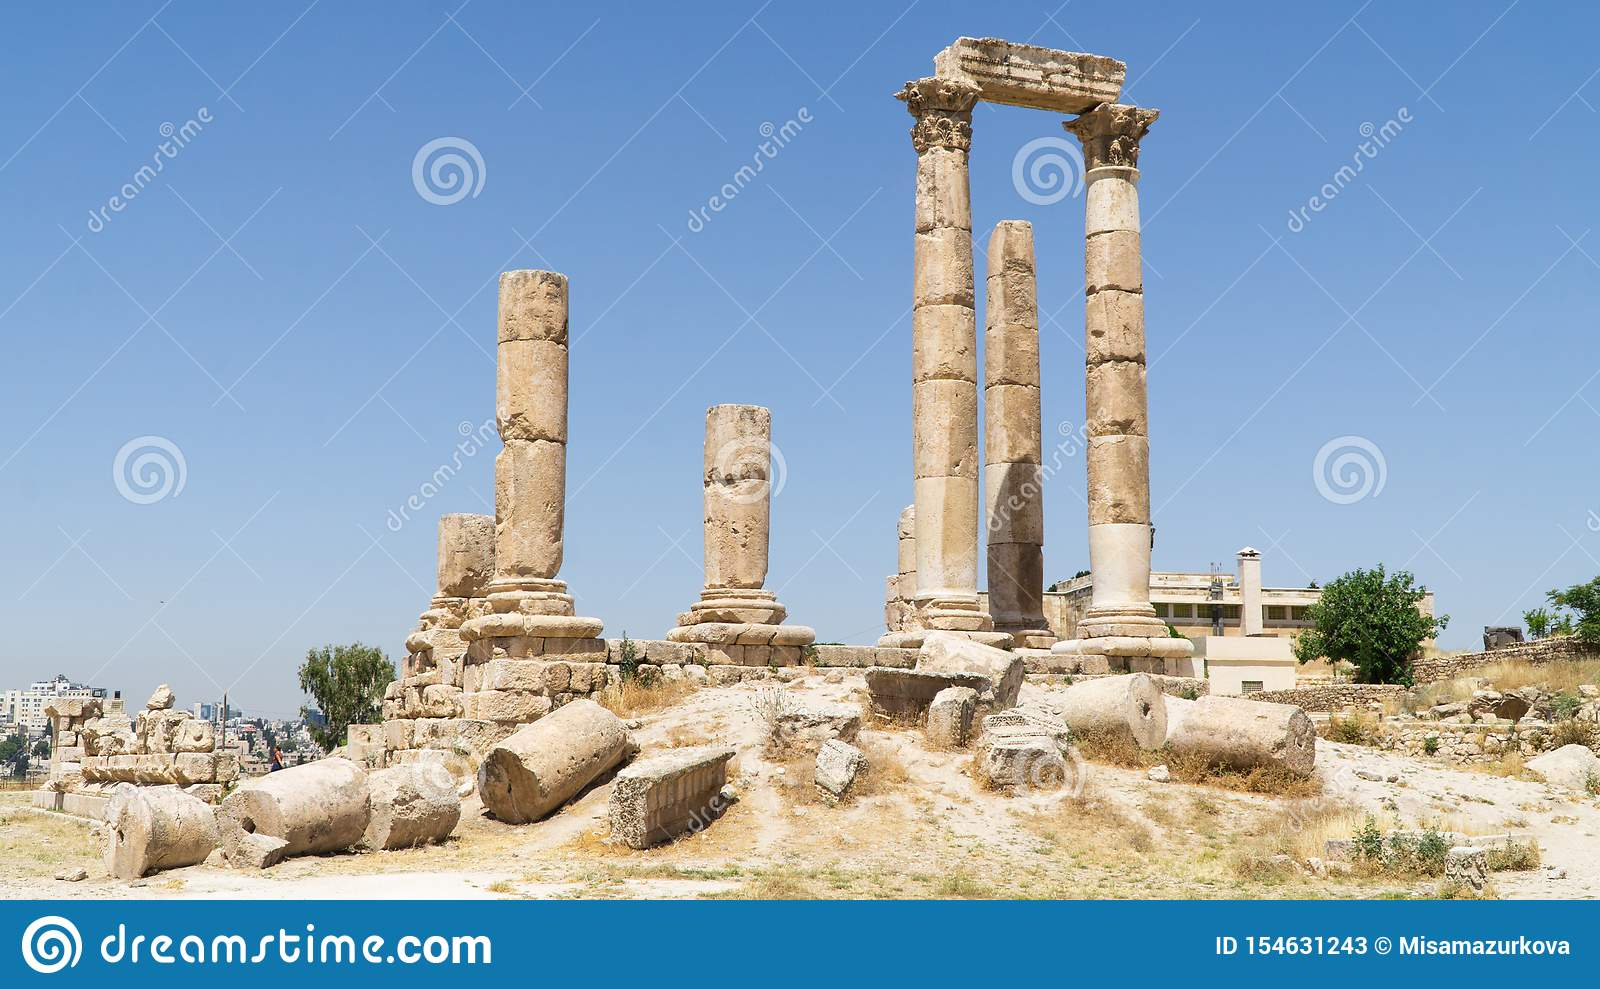 View of the historical site The Amman Citadel situated on the top of the hill in downtown of Amman city, Jordan